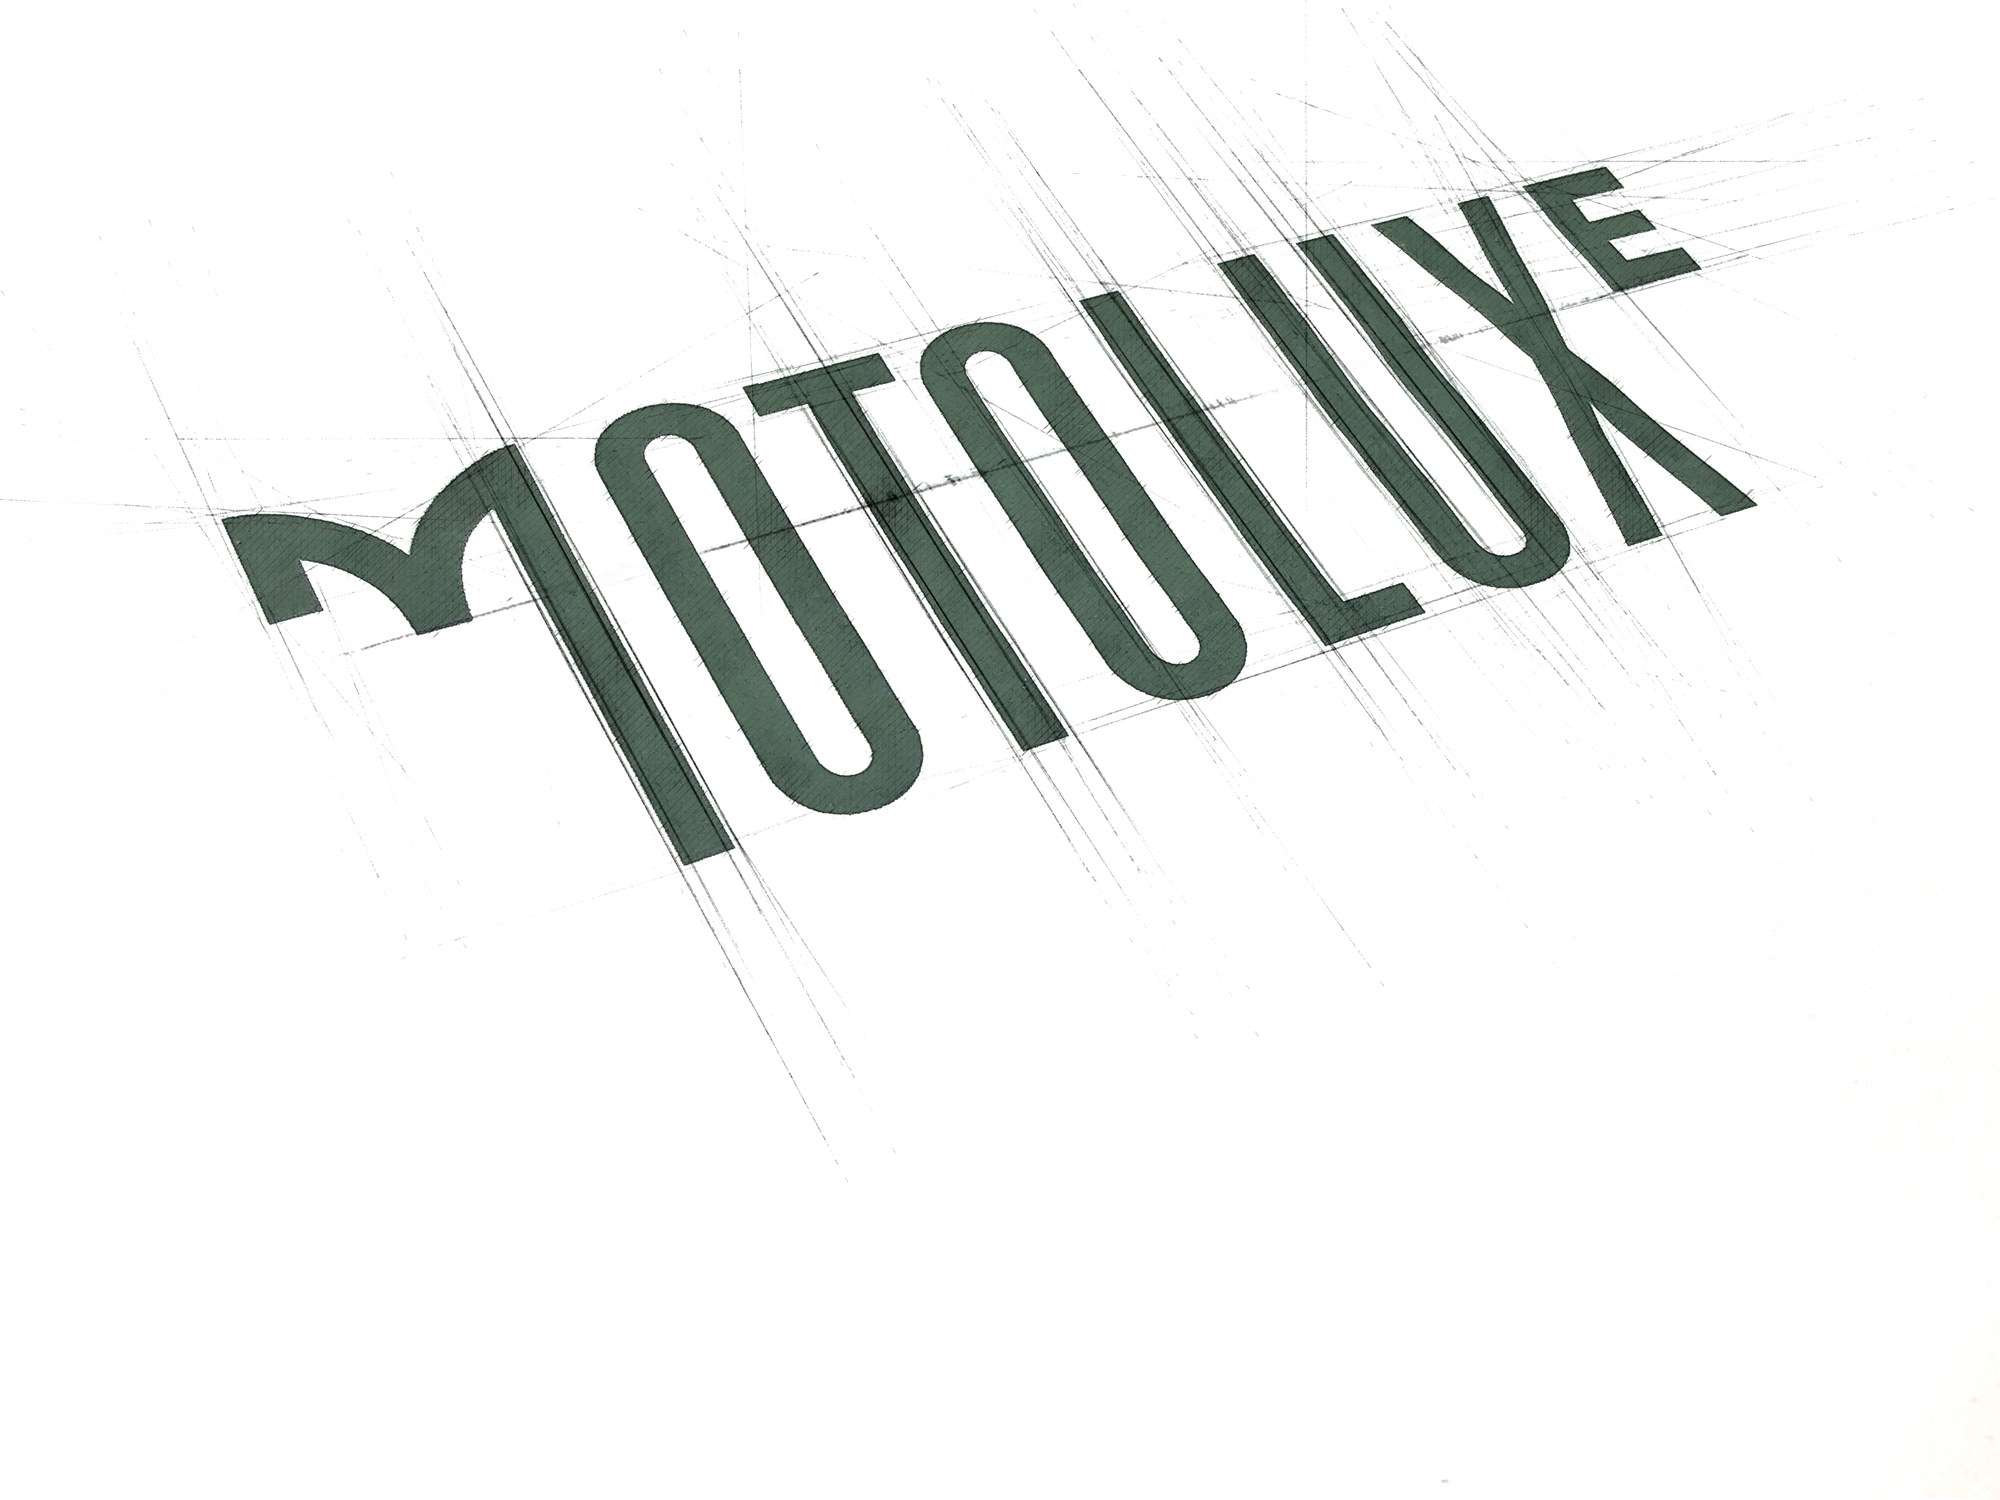 New Work — Coming Soon.Motoluxe.#Brand #Branding #Design #Graphicdesign #Fashion #Luxury #Mensfashion #packagingdesign #packaging #Menswear #Coat #British #Driving #Classic #Classiccar #Classiccars #Gentleman #Motoluxe #TeddyBearCoat #NewRelease #Menswear #MensStyle #Luxury #Outerwear #Style #Rakish #mayfair #london #graphicdesigner #graphicdesign #designagency #brandingagency